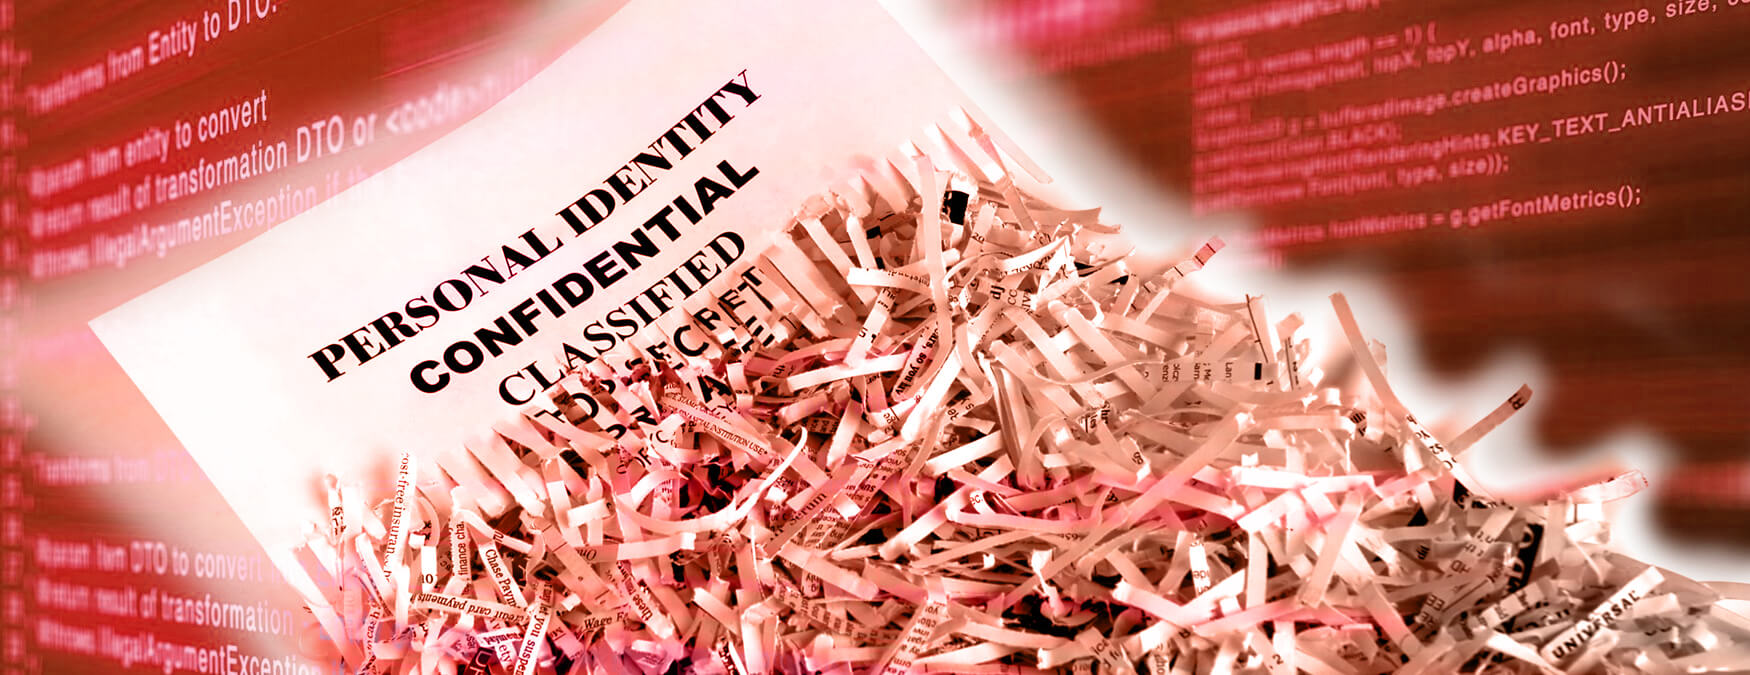 Secure Paper Shredding - DD